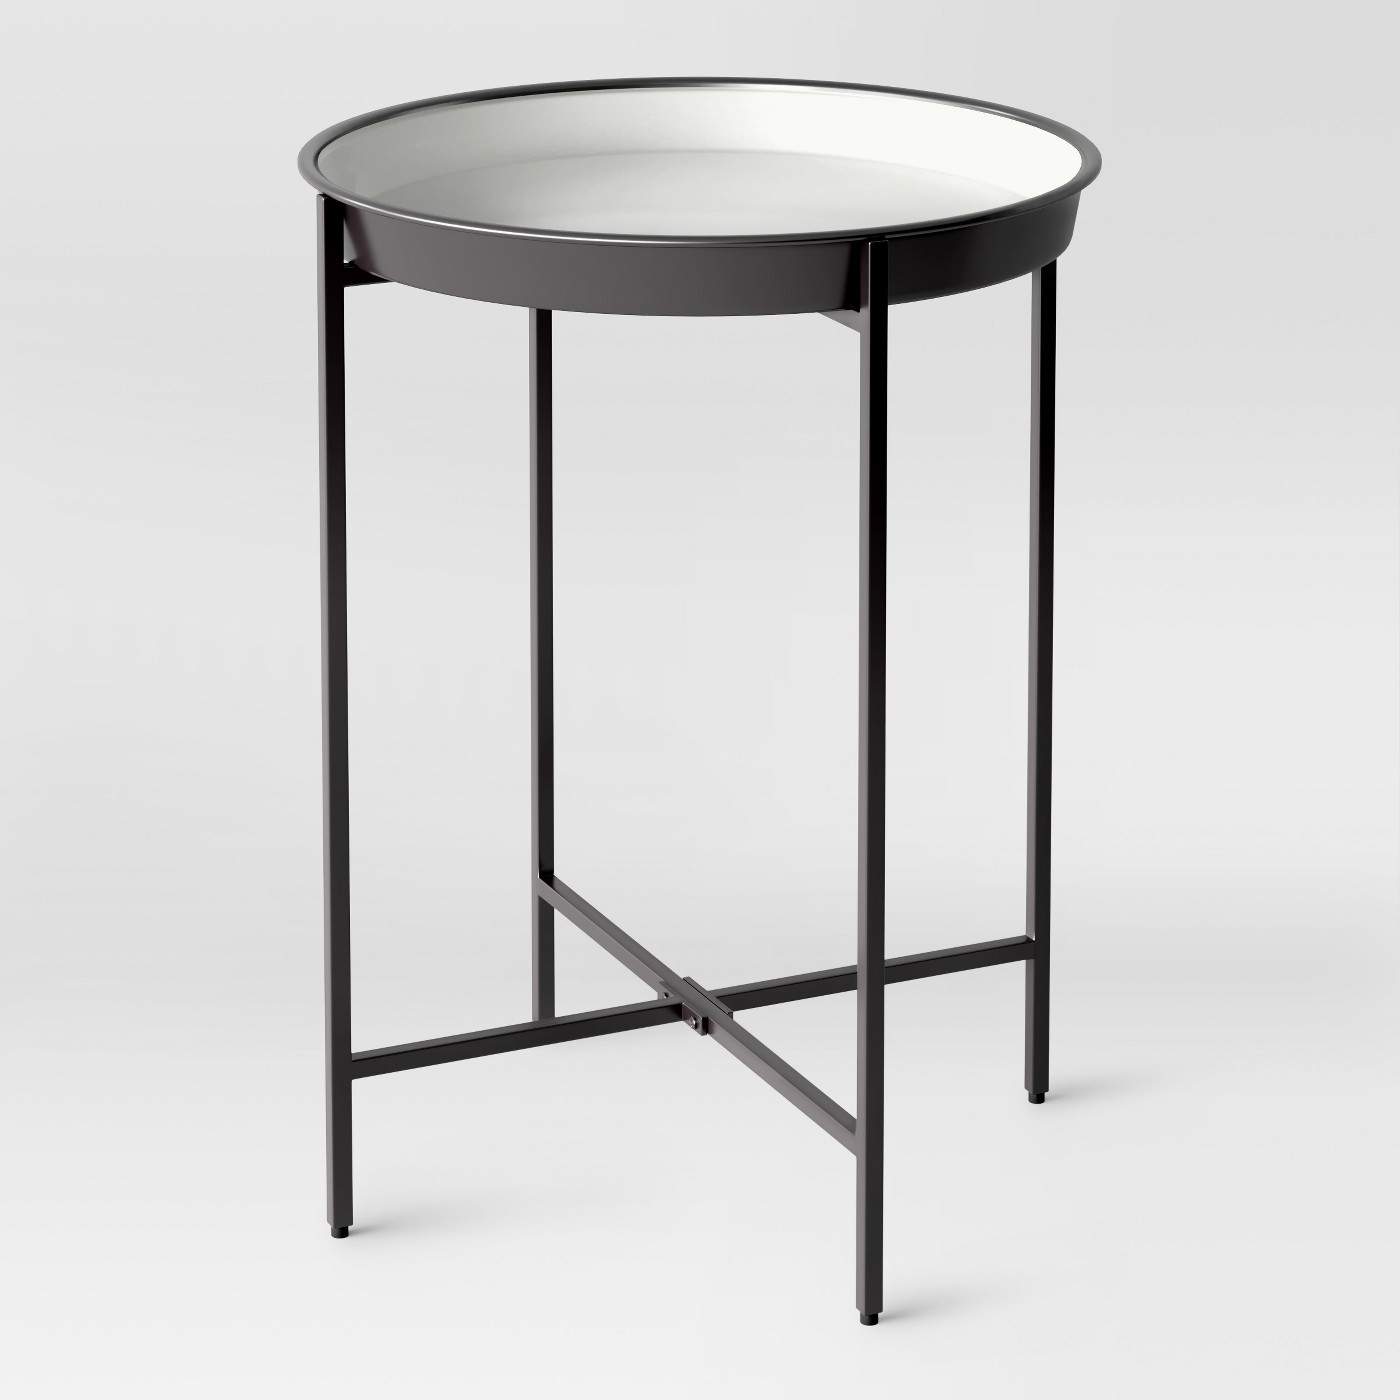 end tables target home that upgrade your living hourglass accent table room for less than threshold round circular brass glass storage cabinet with doors tall outdoor bar and